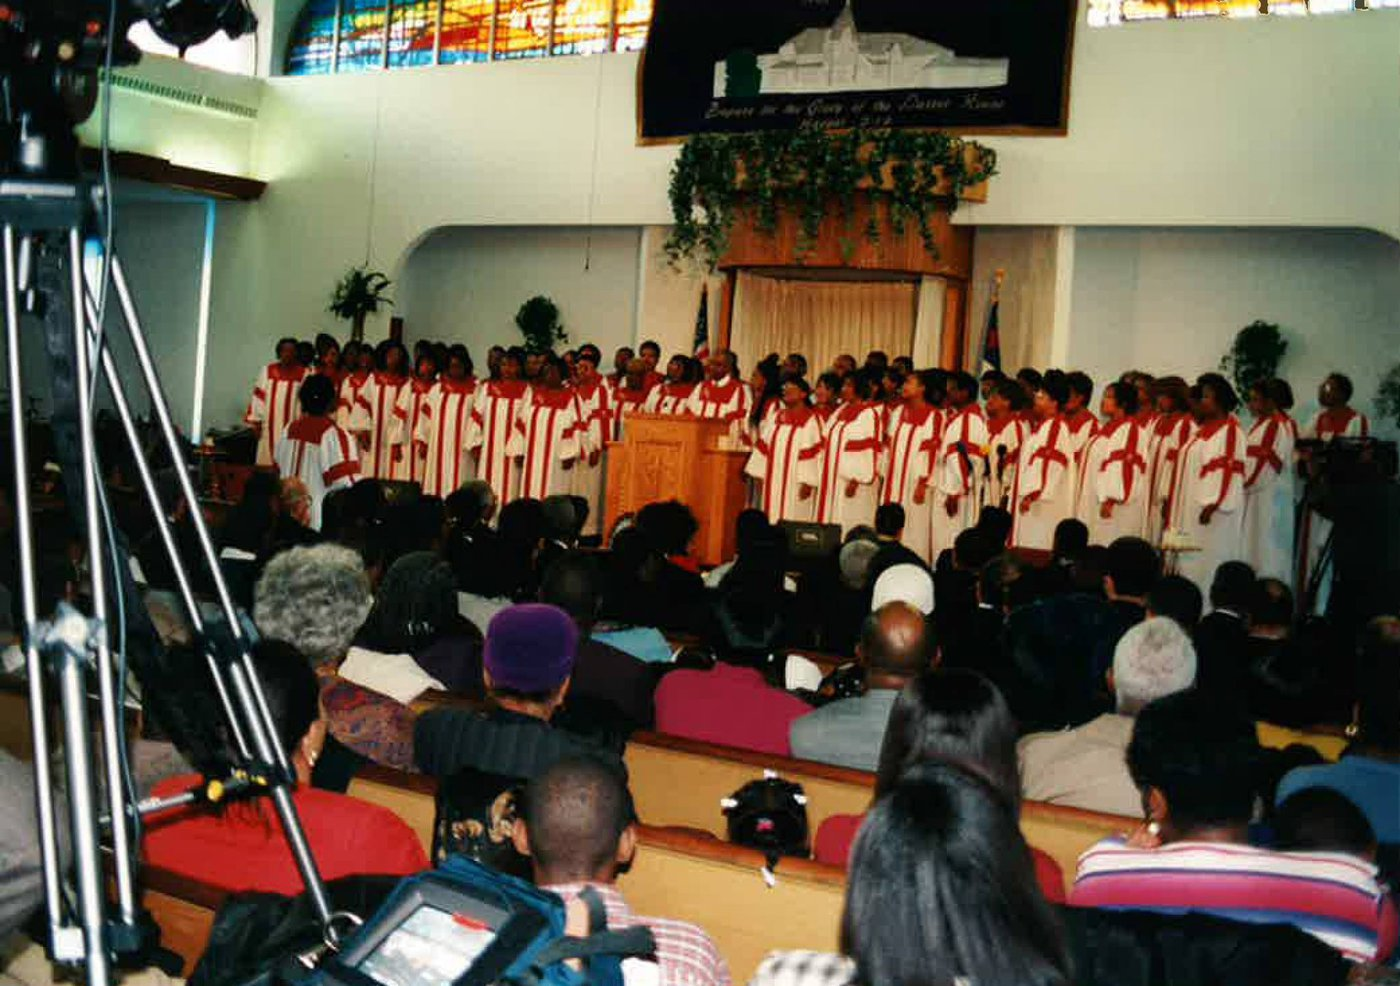 New Covenant Church of Philadelphia holds it final morning service in the property at Johnson & Ardleigh Streets.